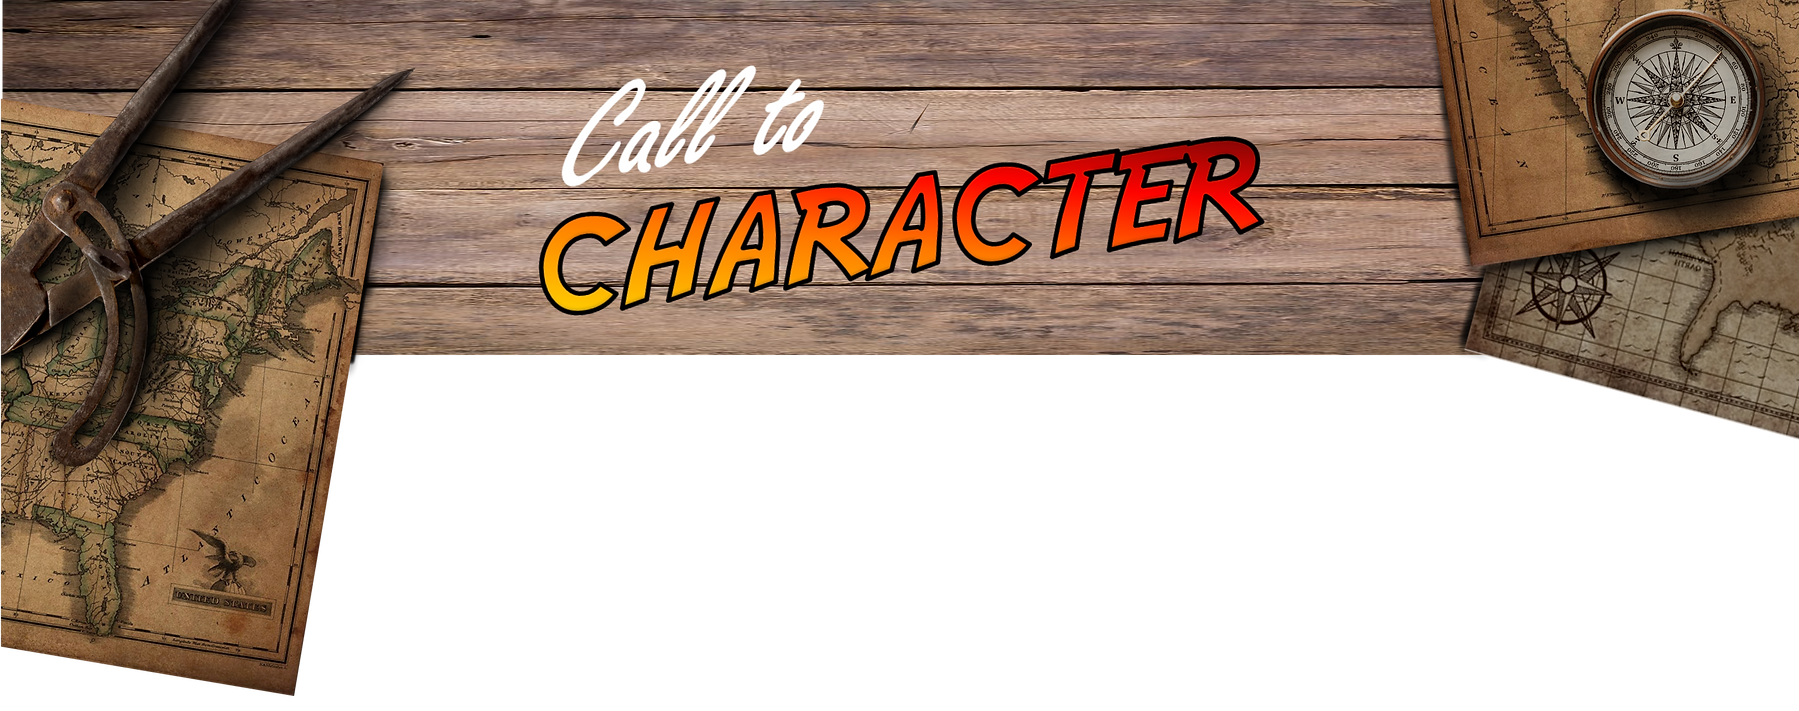 Call to Character-New2.png